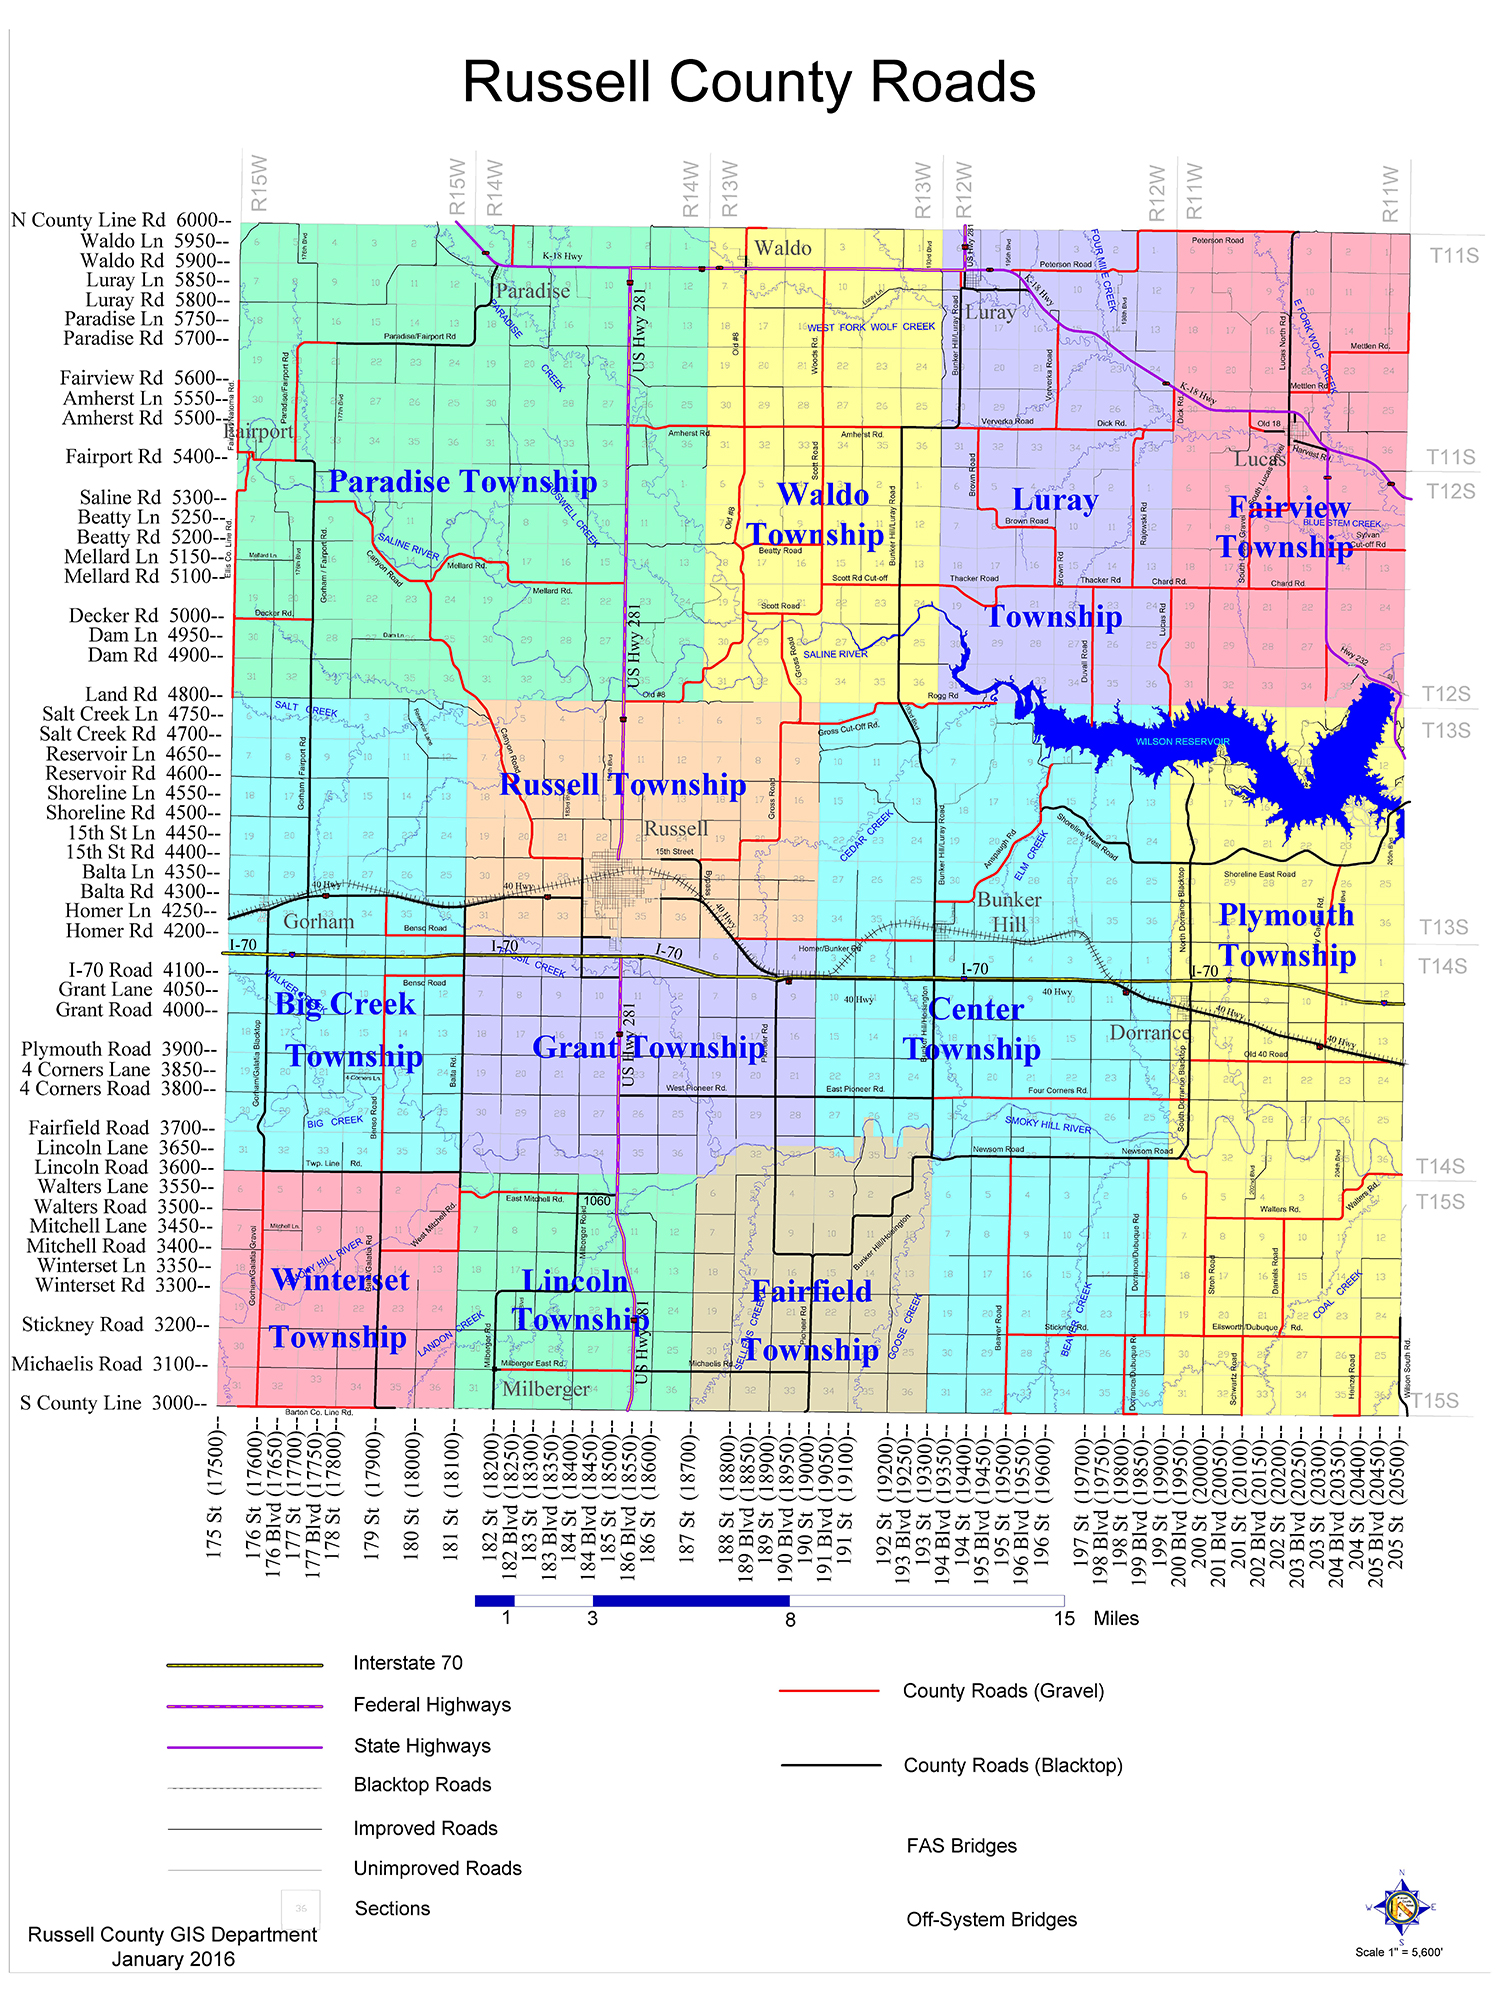 Russell County Township Map